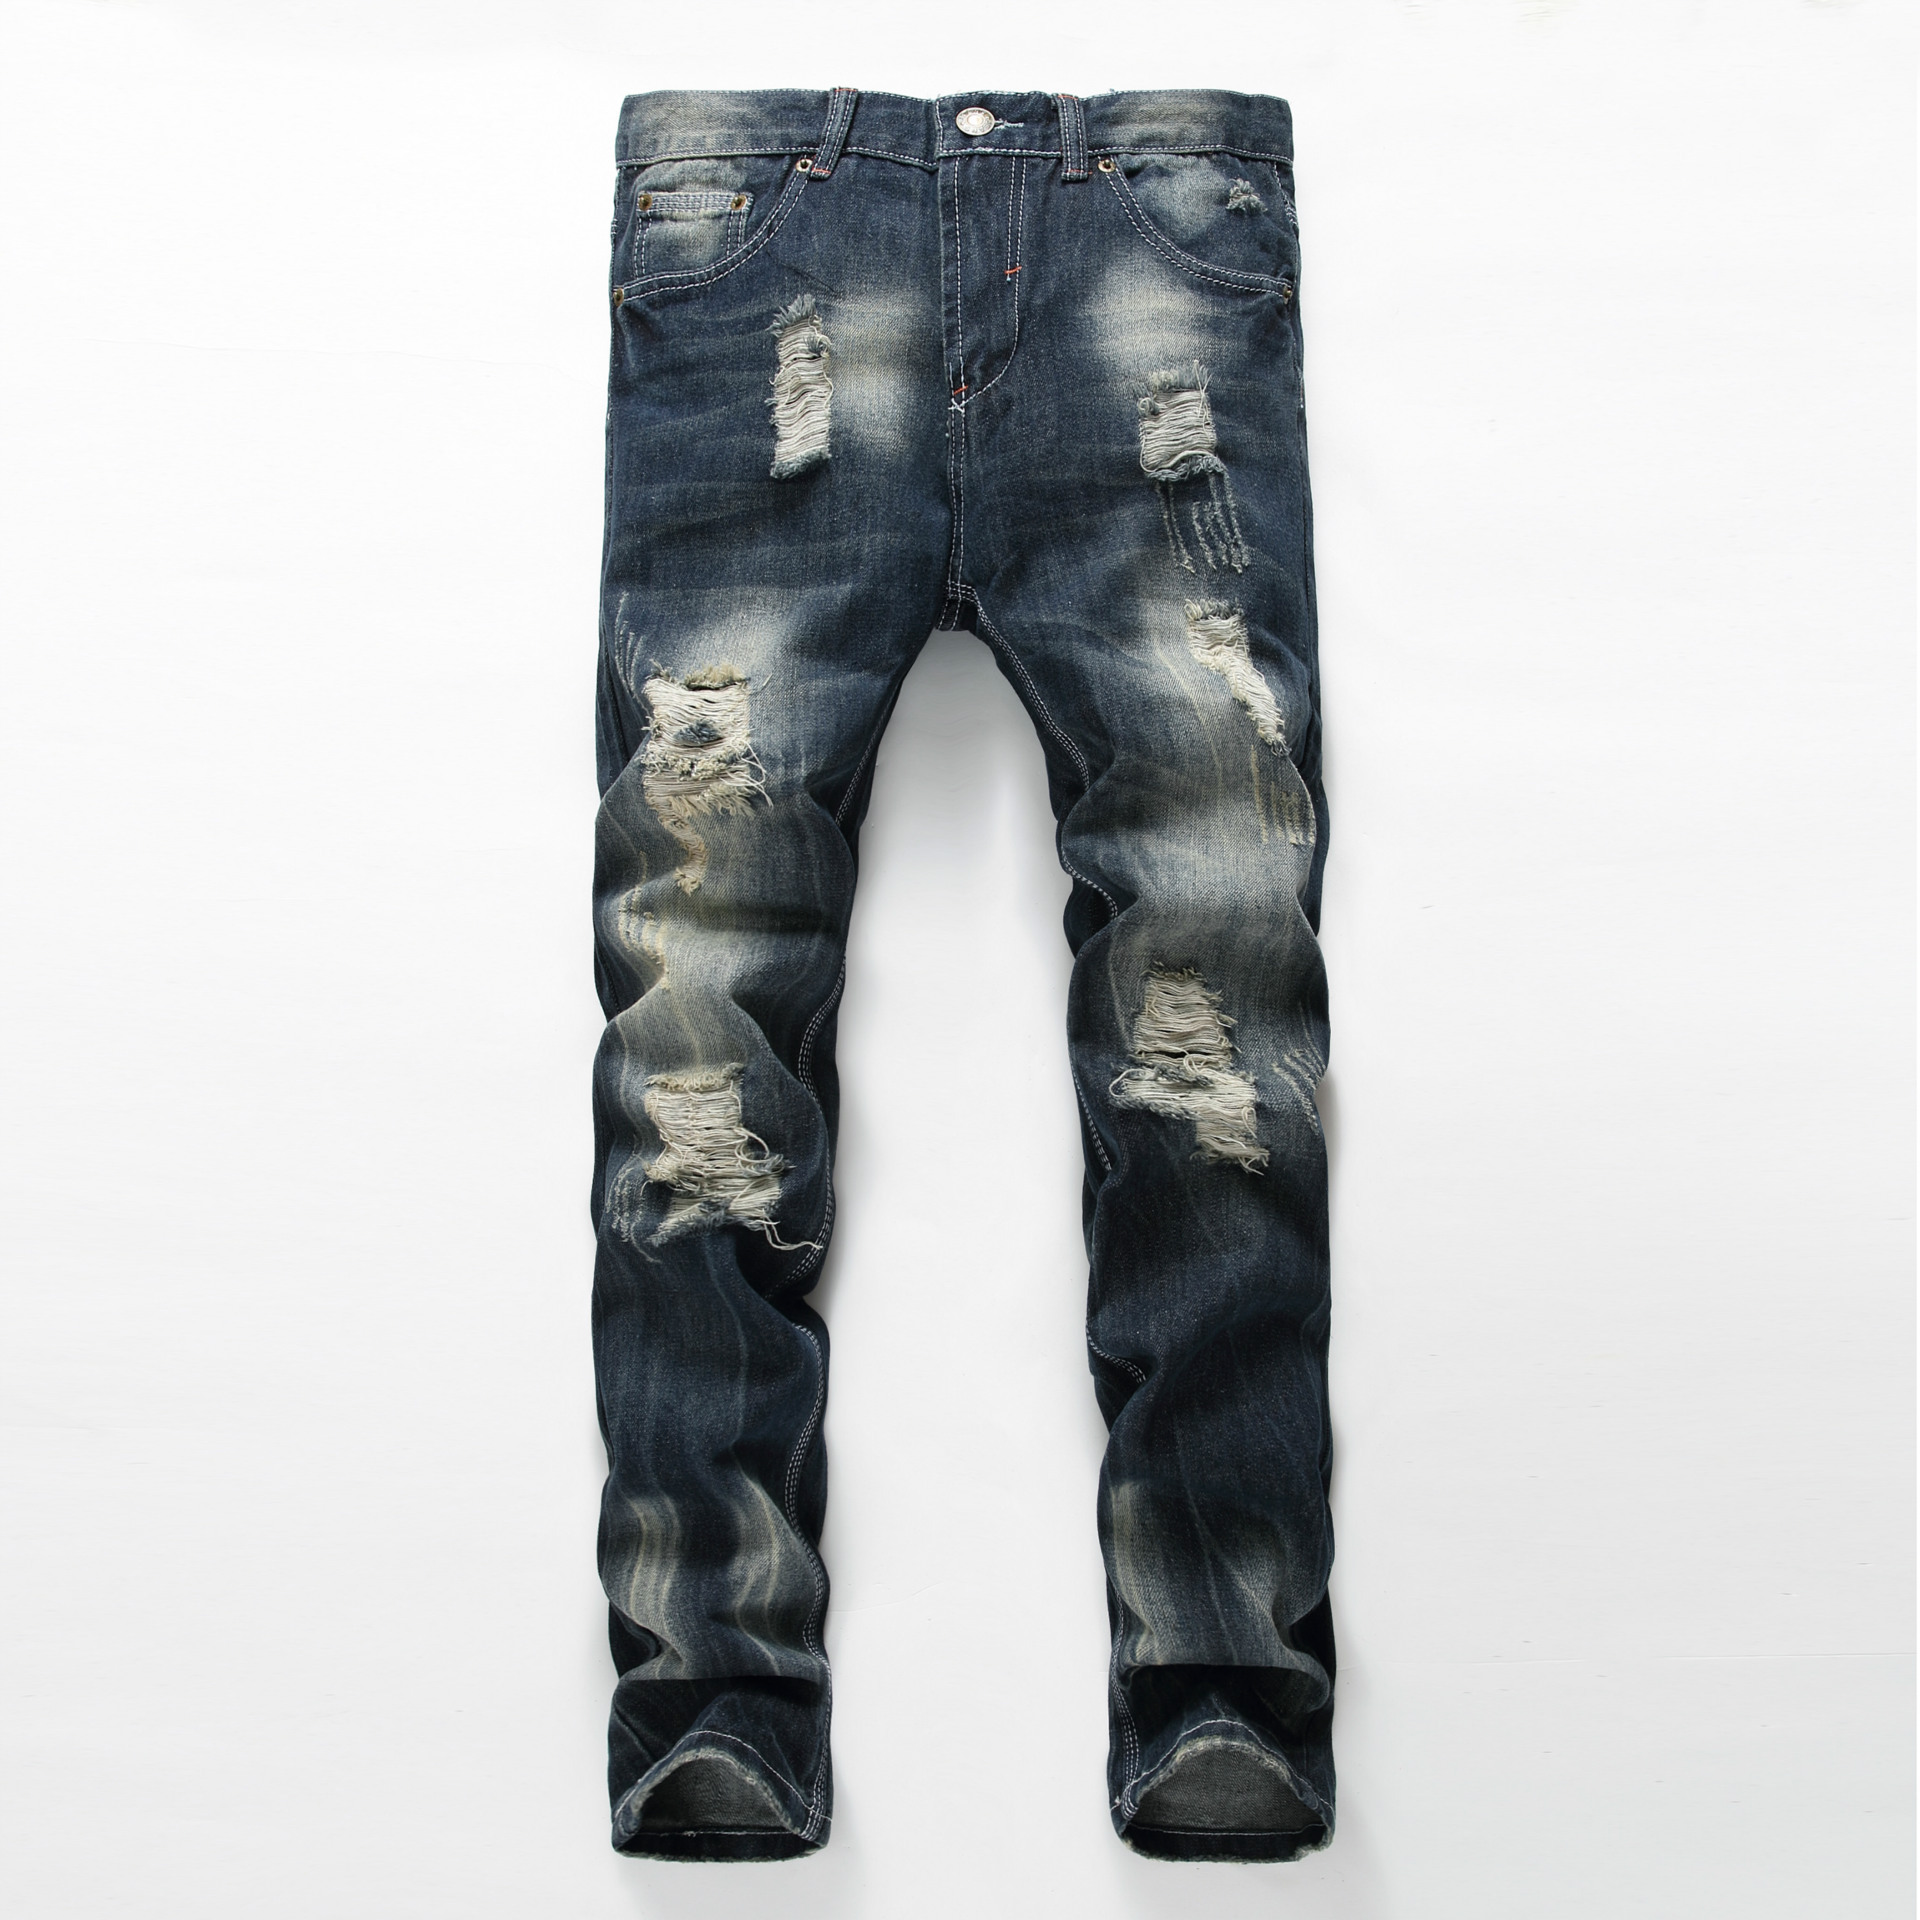 Slim Fit West Jeans Trousers Men Torn Denim Jeans Fashion Jean Homme